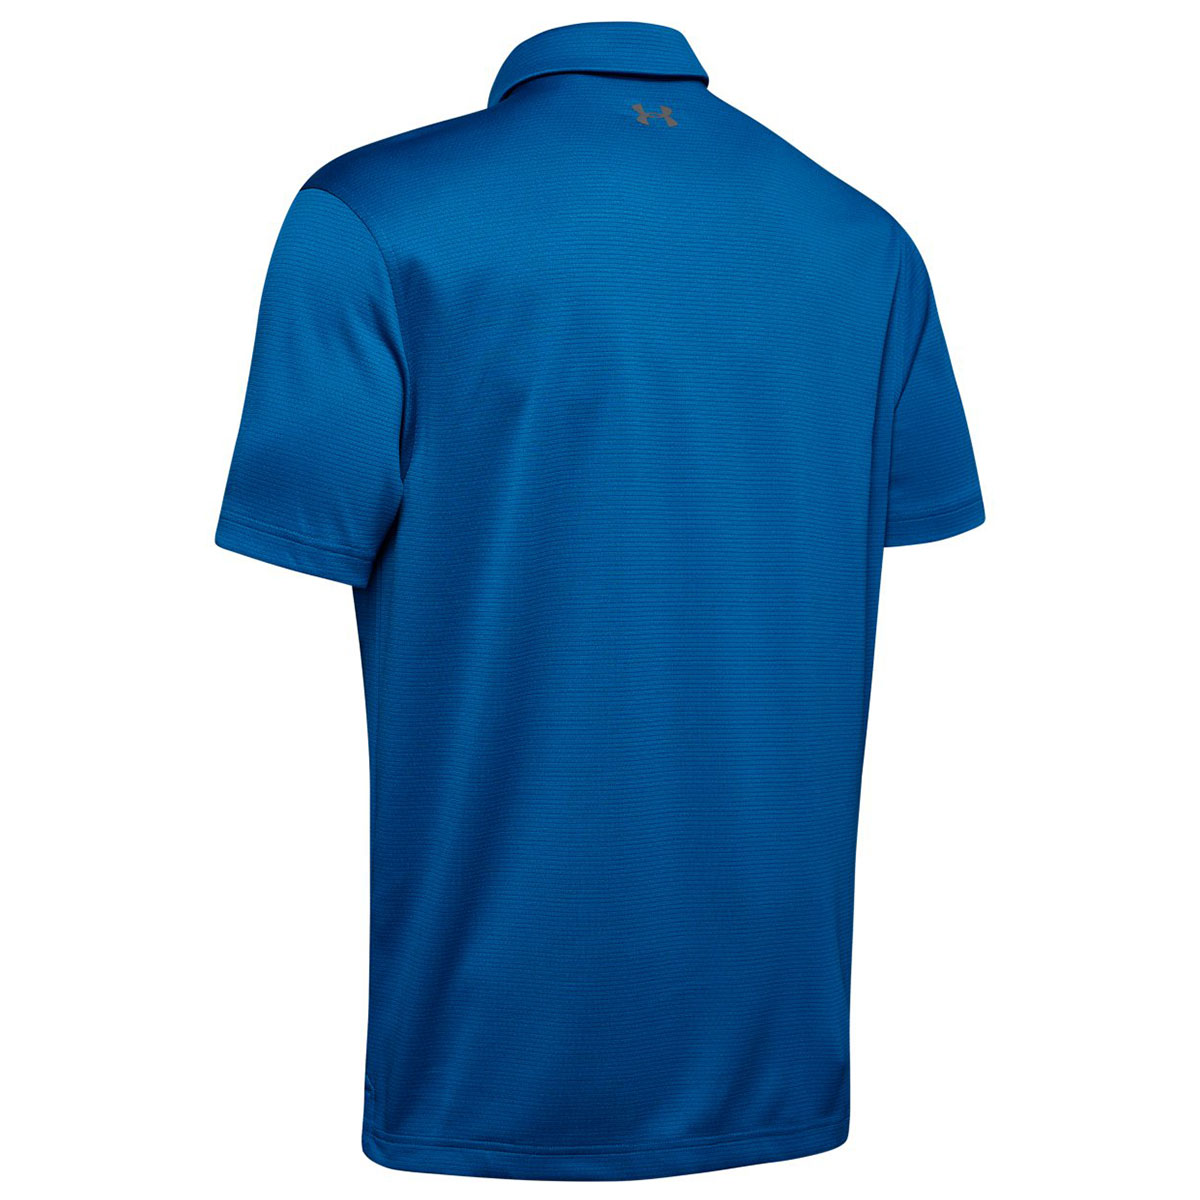 Under-Armour-Mens-Golf-Tech-Wicking-Textured-Soft-Light-Polo-Shirt thumbnail 77